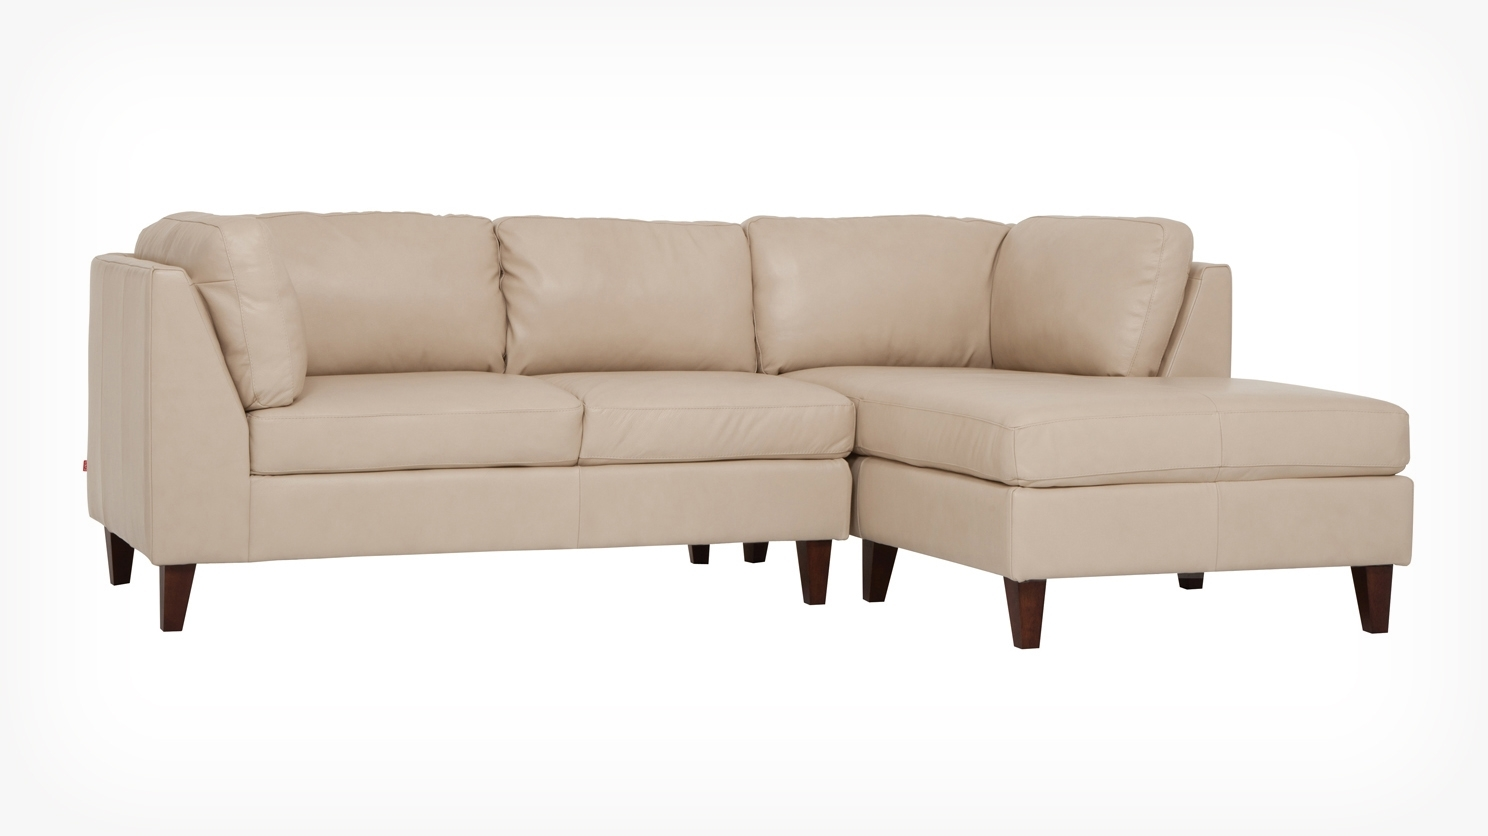 Salema 2 Piece Sectional Sofa With Chaise – Leather Throughout Eq3 Sectional Sofas (View 15 of 20)